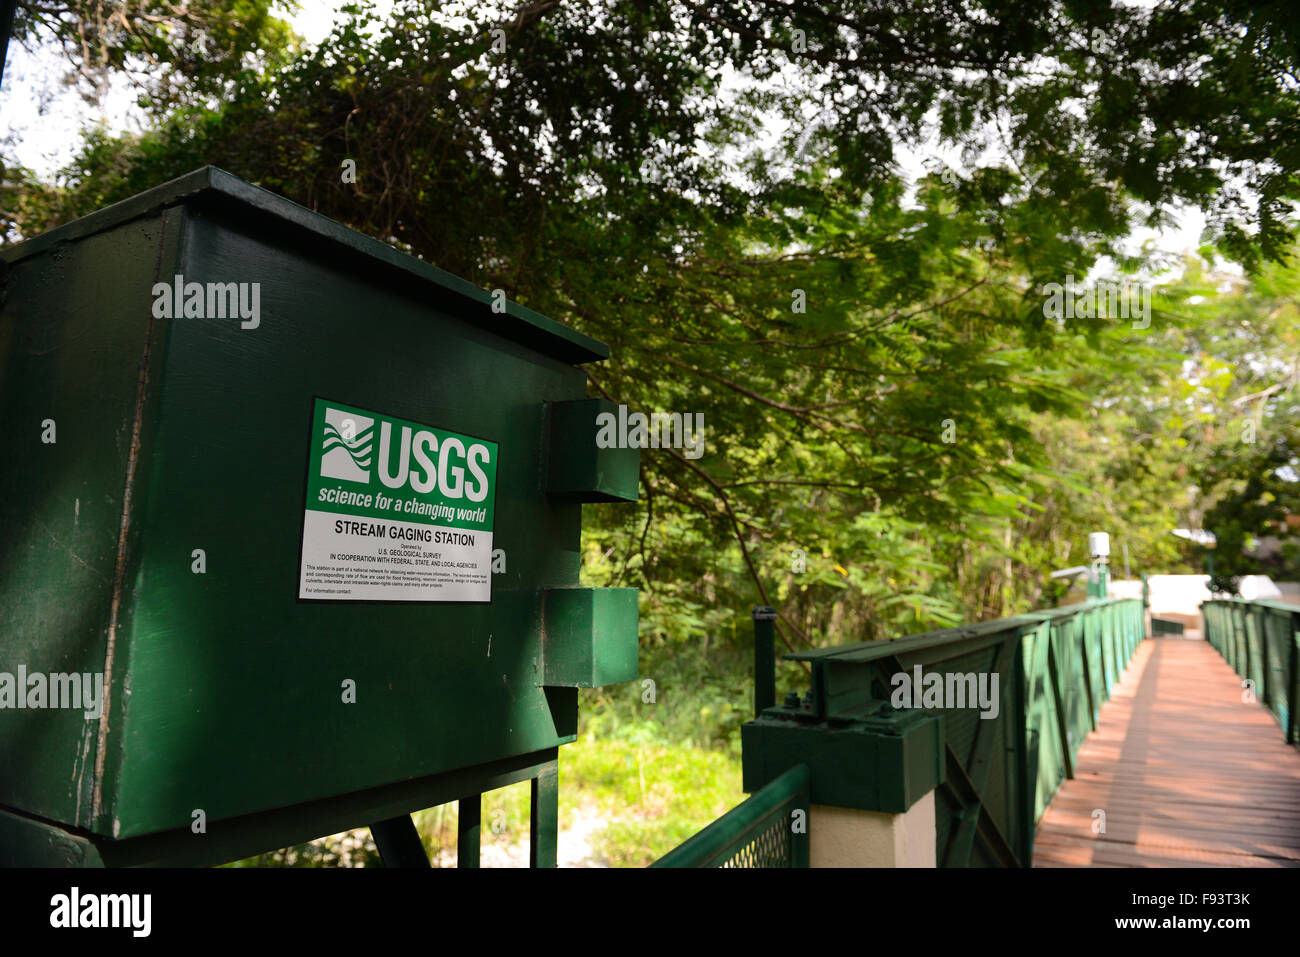 USGS - Stream gaging station at the Tibes Indigenous Ceremonial Center. Ponce, Puerto Rico. Caribbean Island. USA - Stock Image